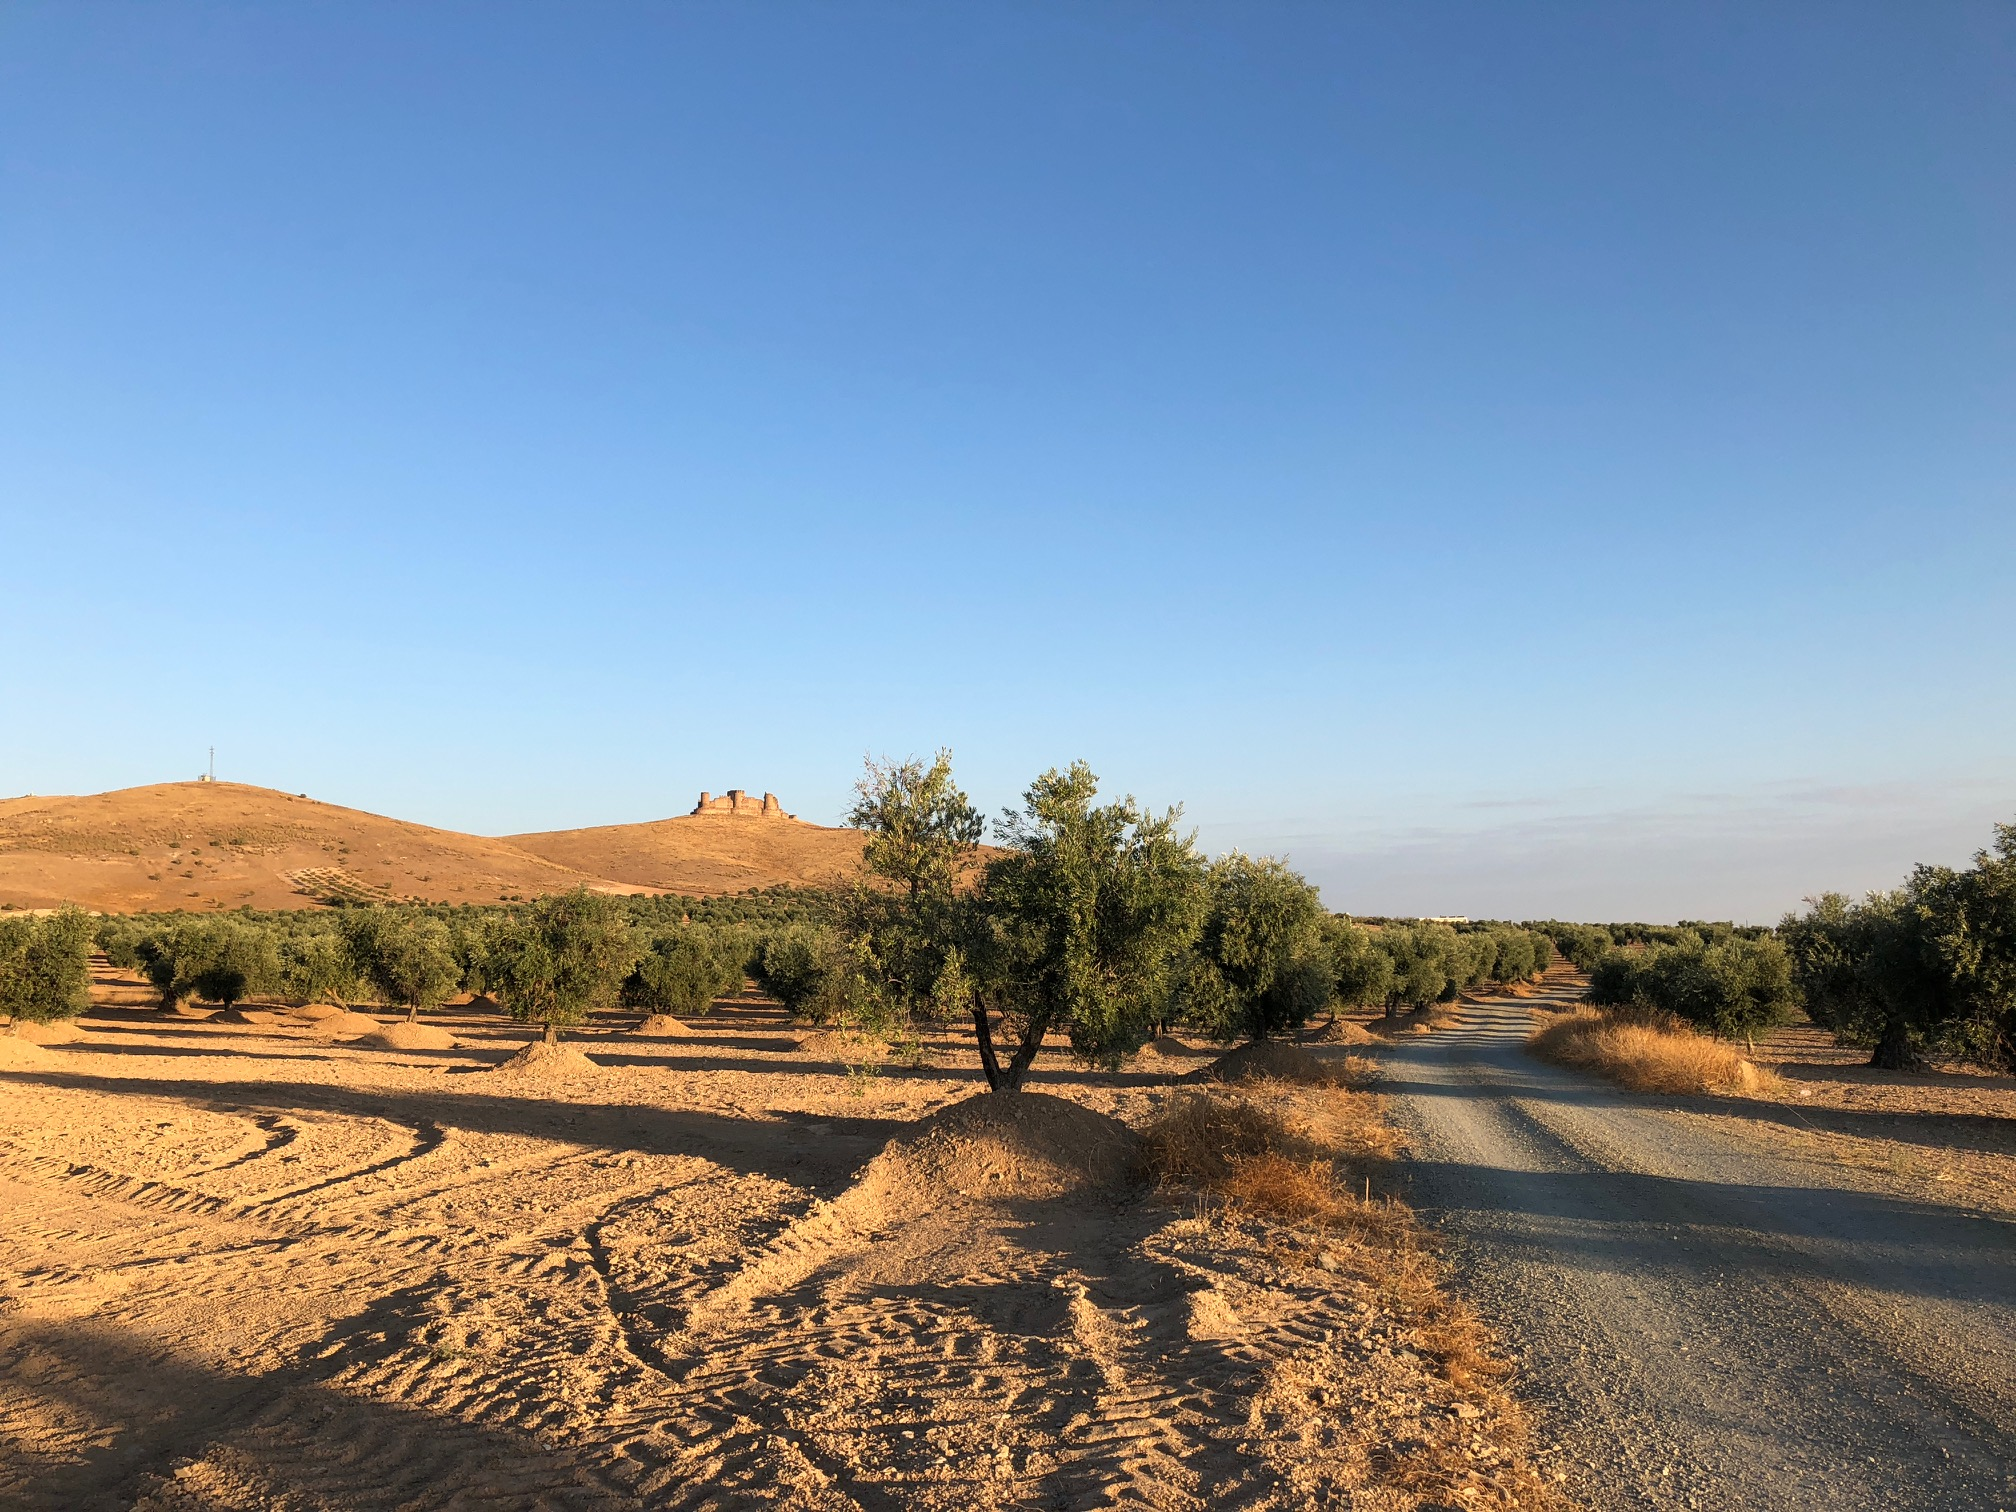 OLIVE GROVES AND THE CASTLE DOMINATED THE SECOND LEG OF THE WALK